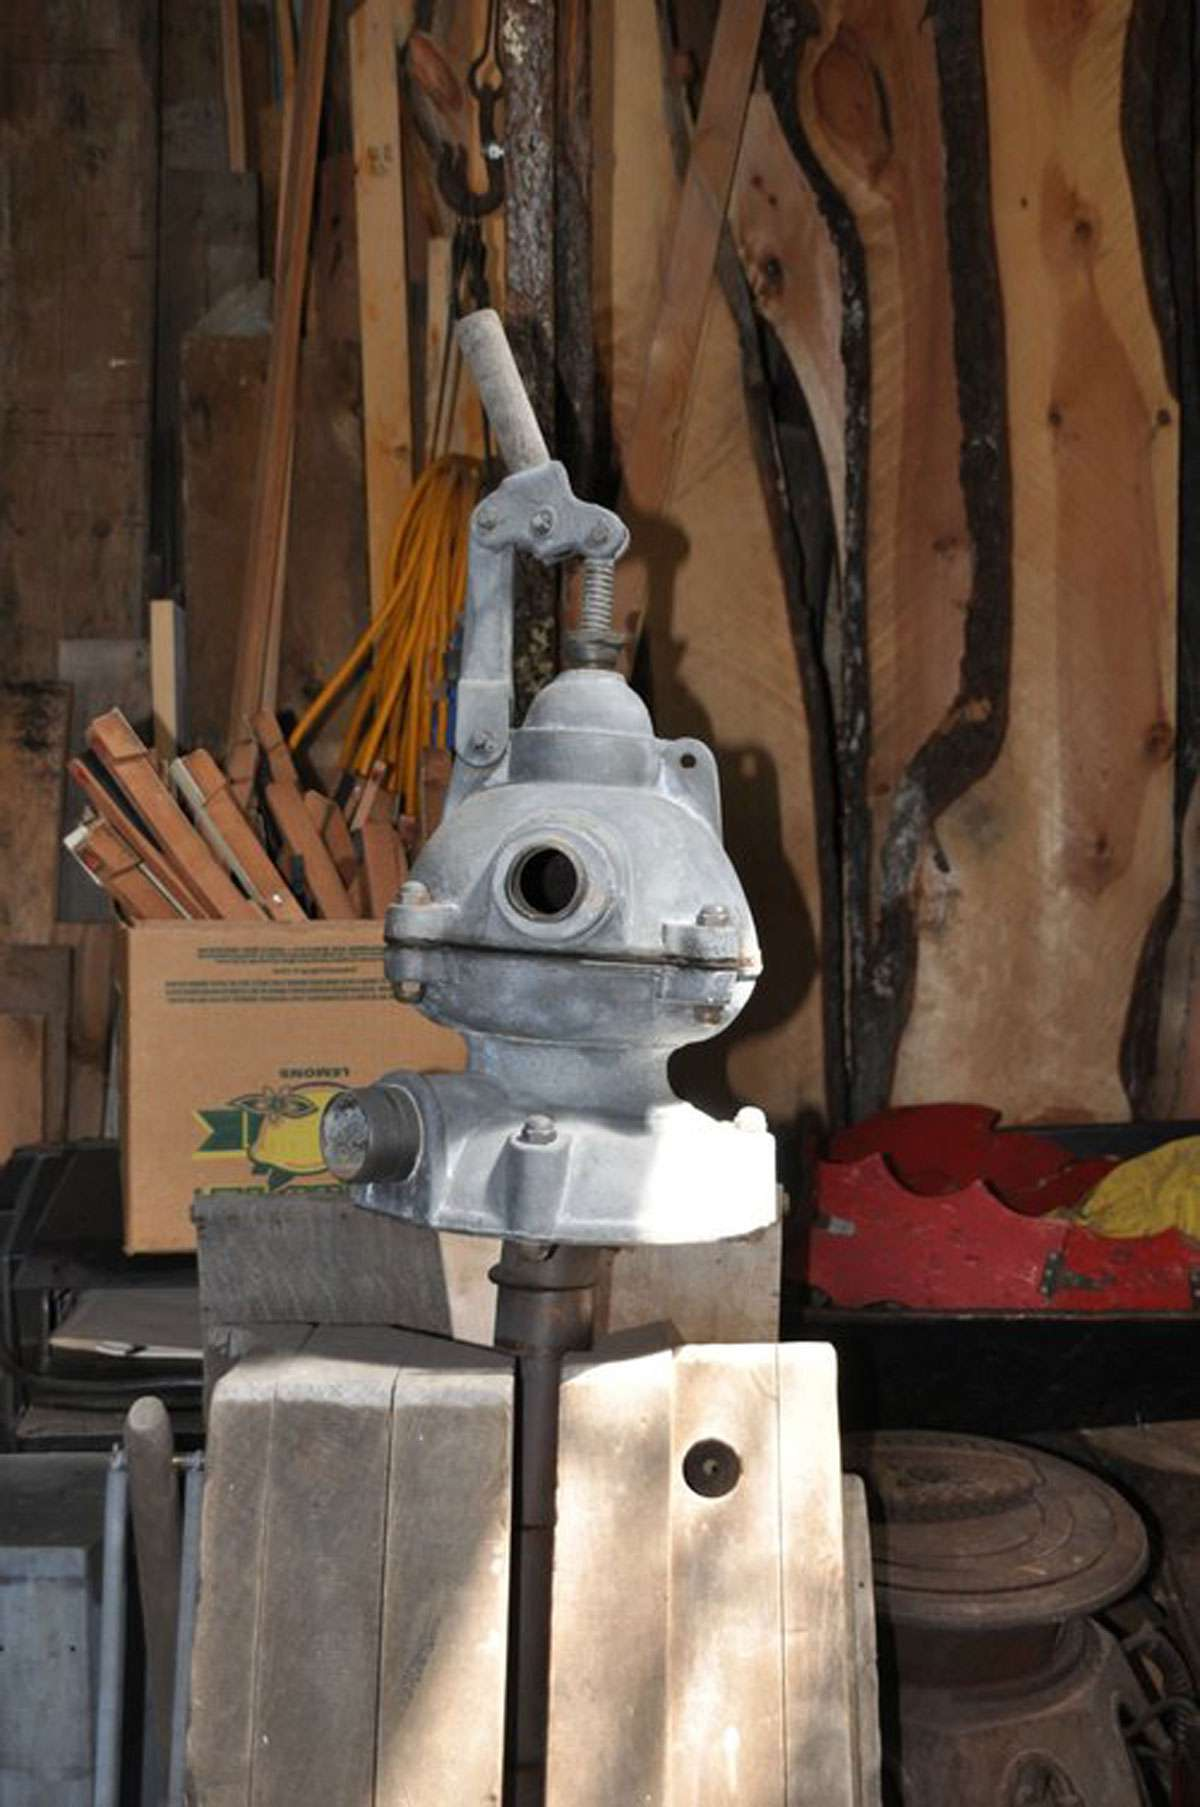 Peter's creations are made of cast-off items ranging from pieces of a pickup truck to a bilge pump. Photo: Meg Pier